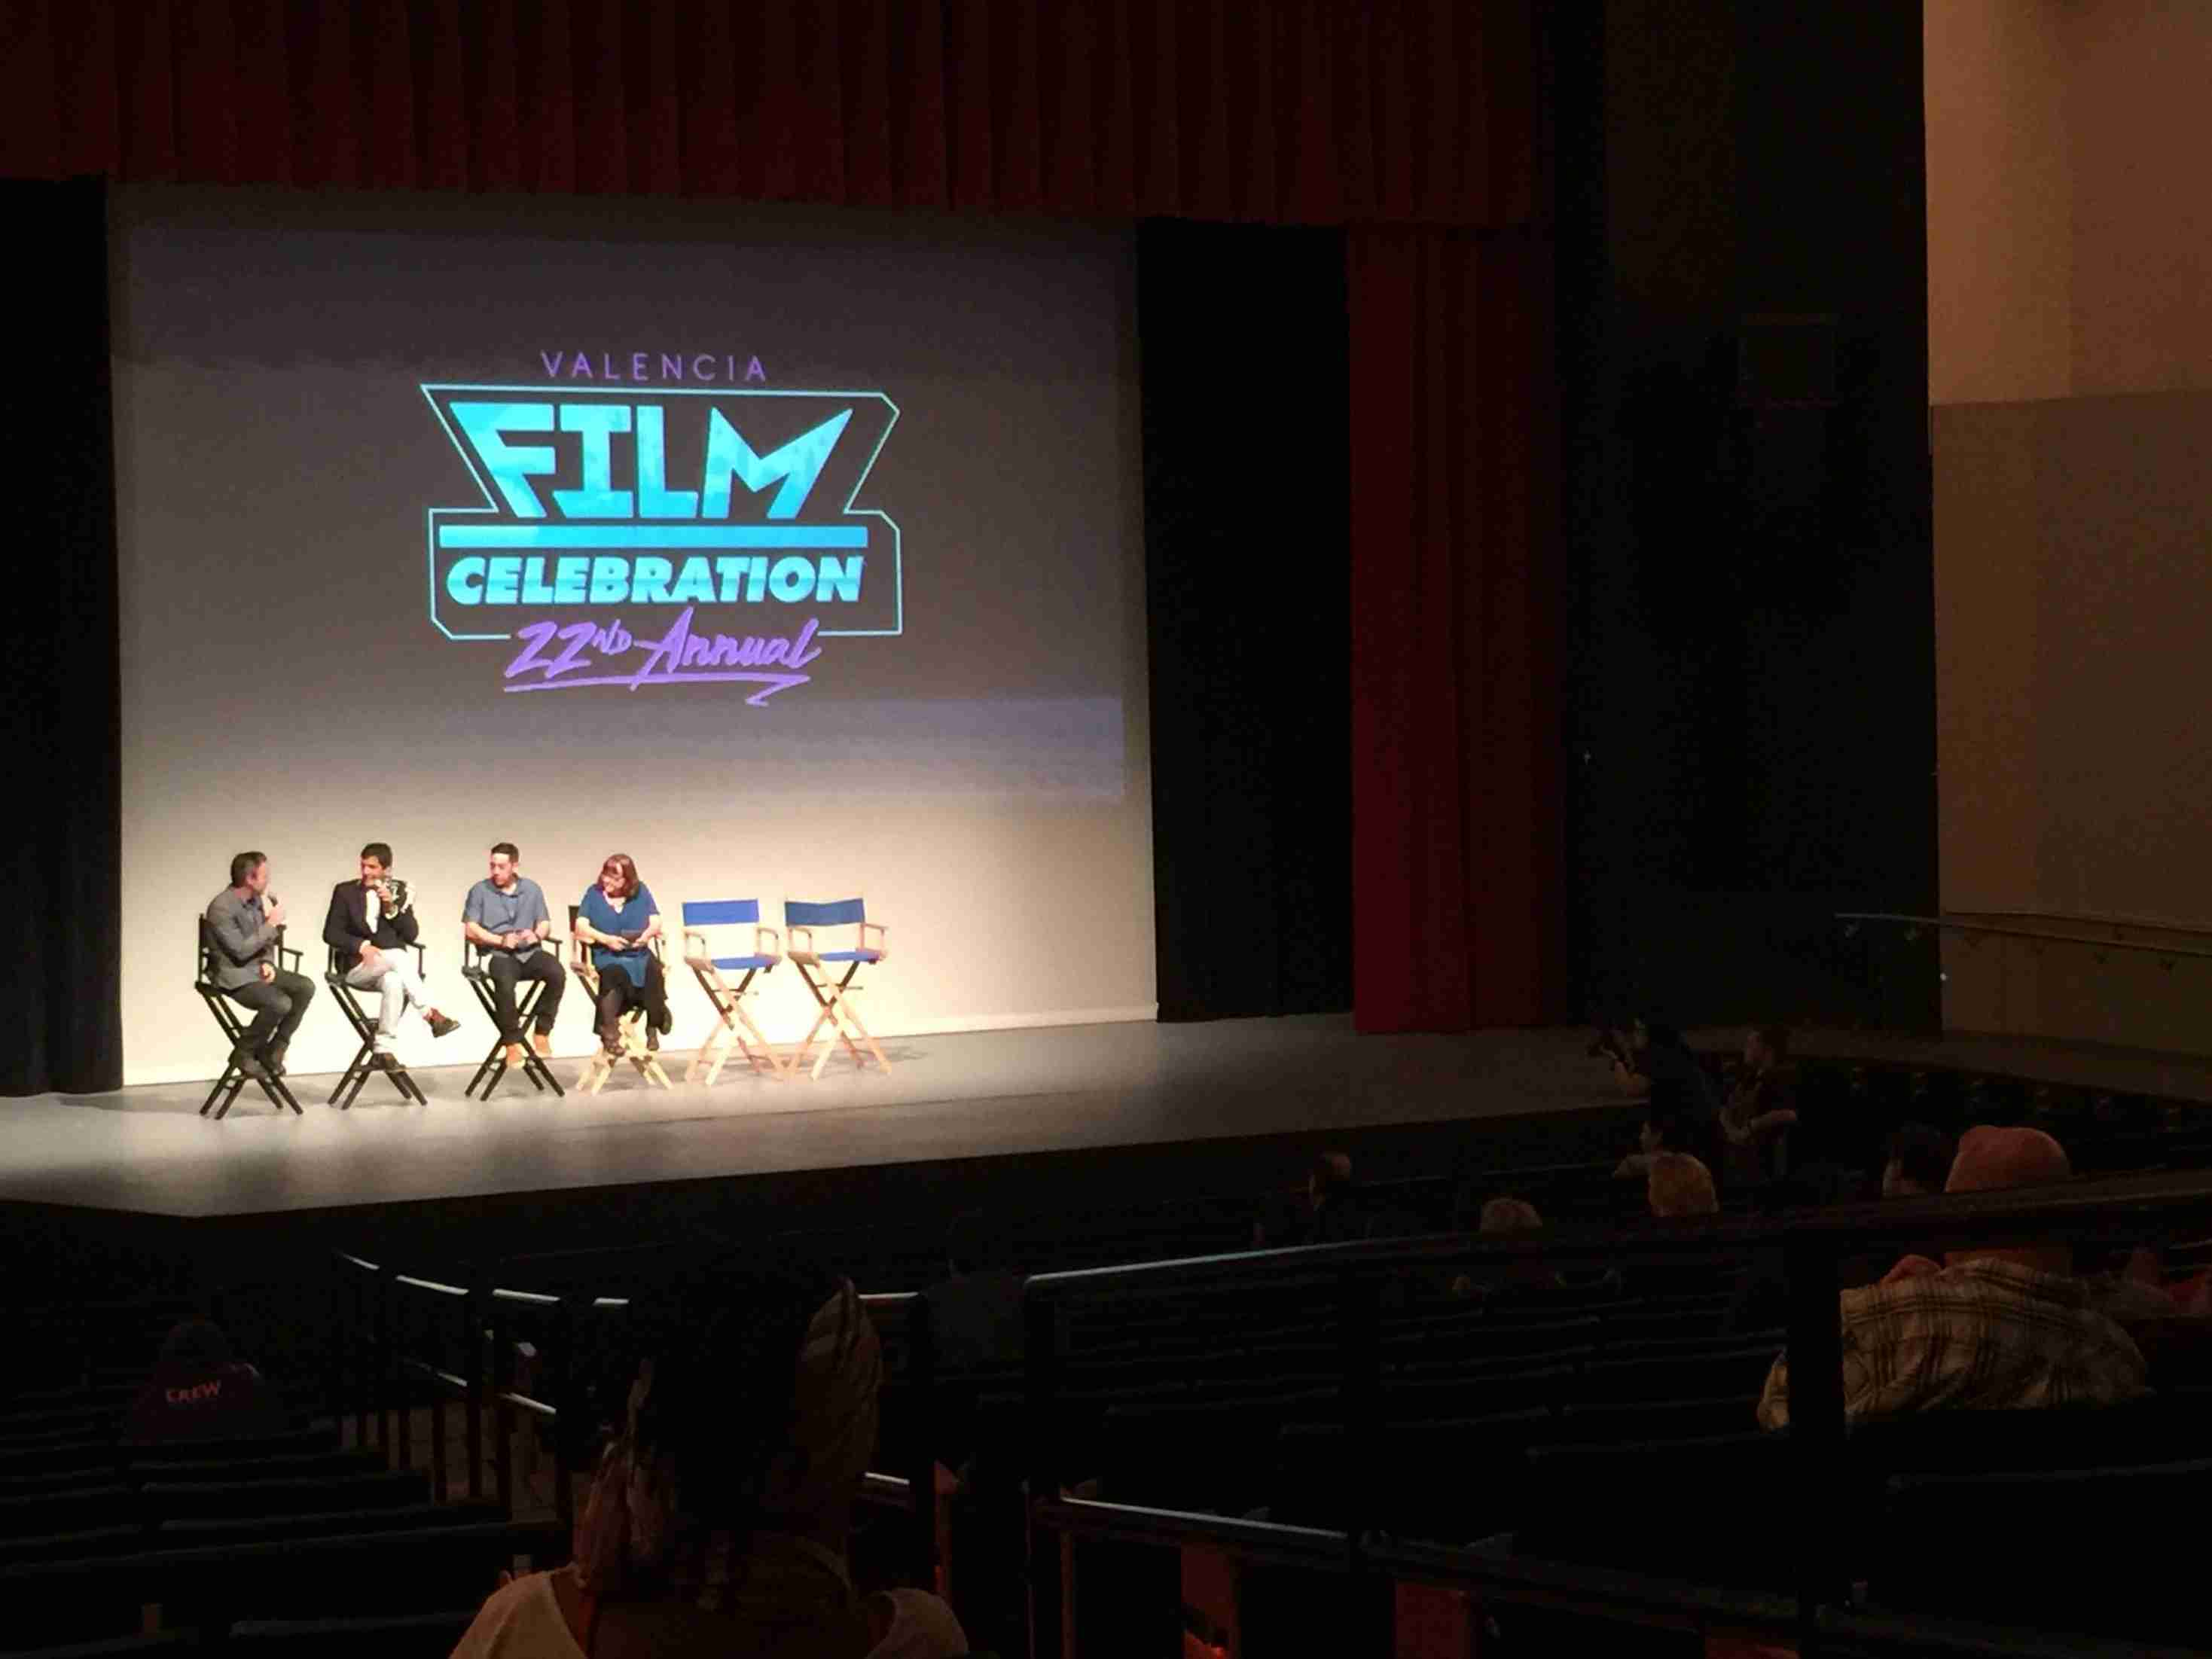 Eric Fleming, Valencia's Film Program Director, shares the stage with Julio Uchoa, Jose Cartagena, and Colleen Carr during a Q&A session.